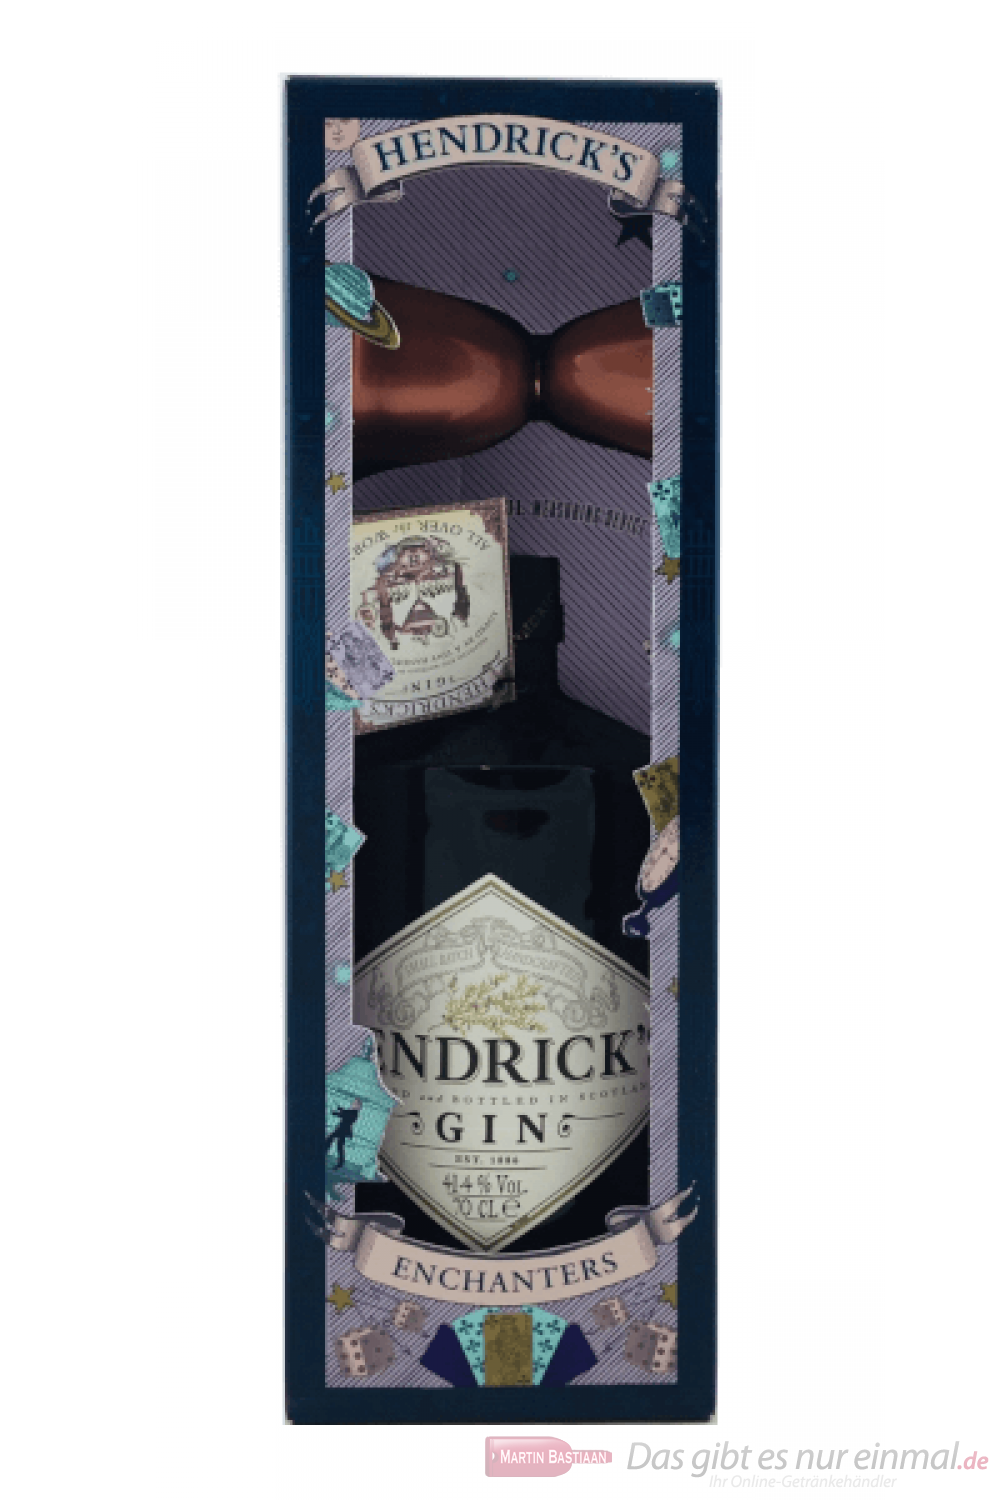 Hendricks Enchanter Pack